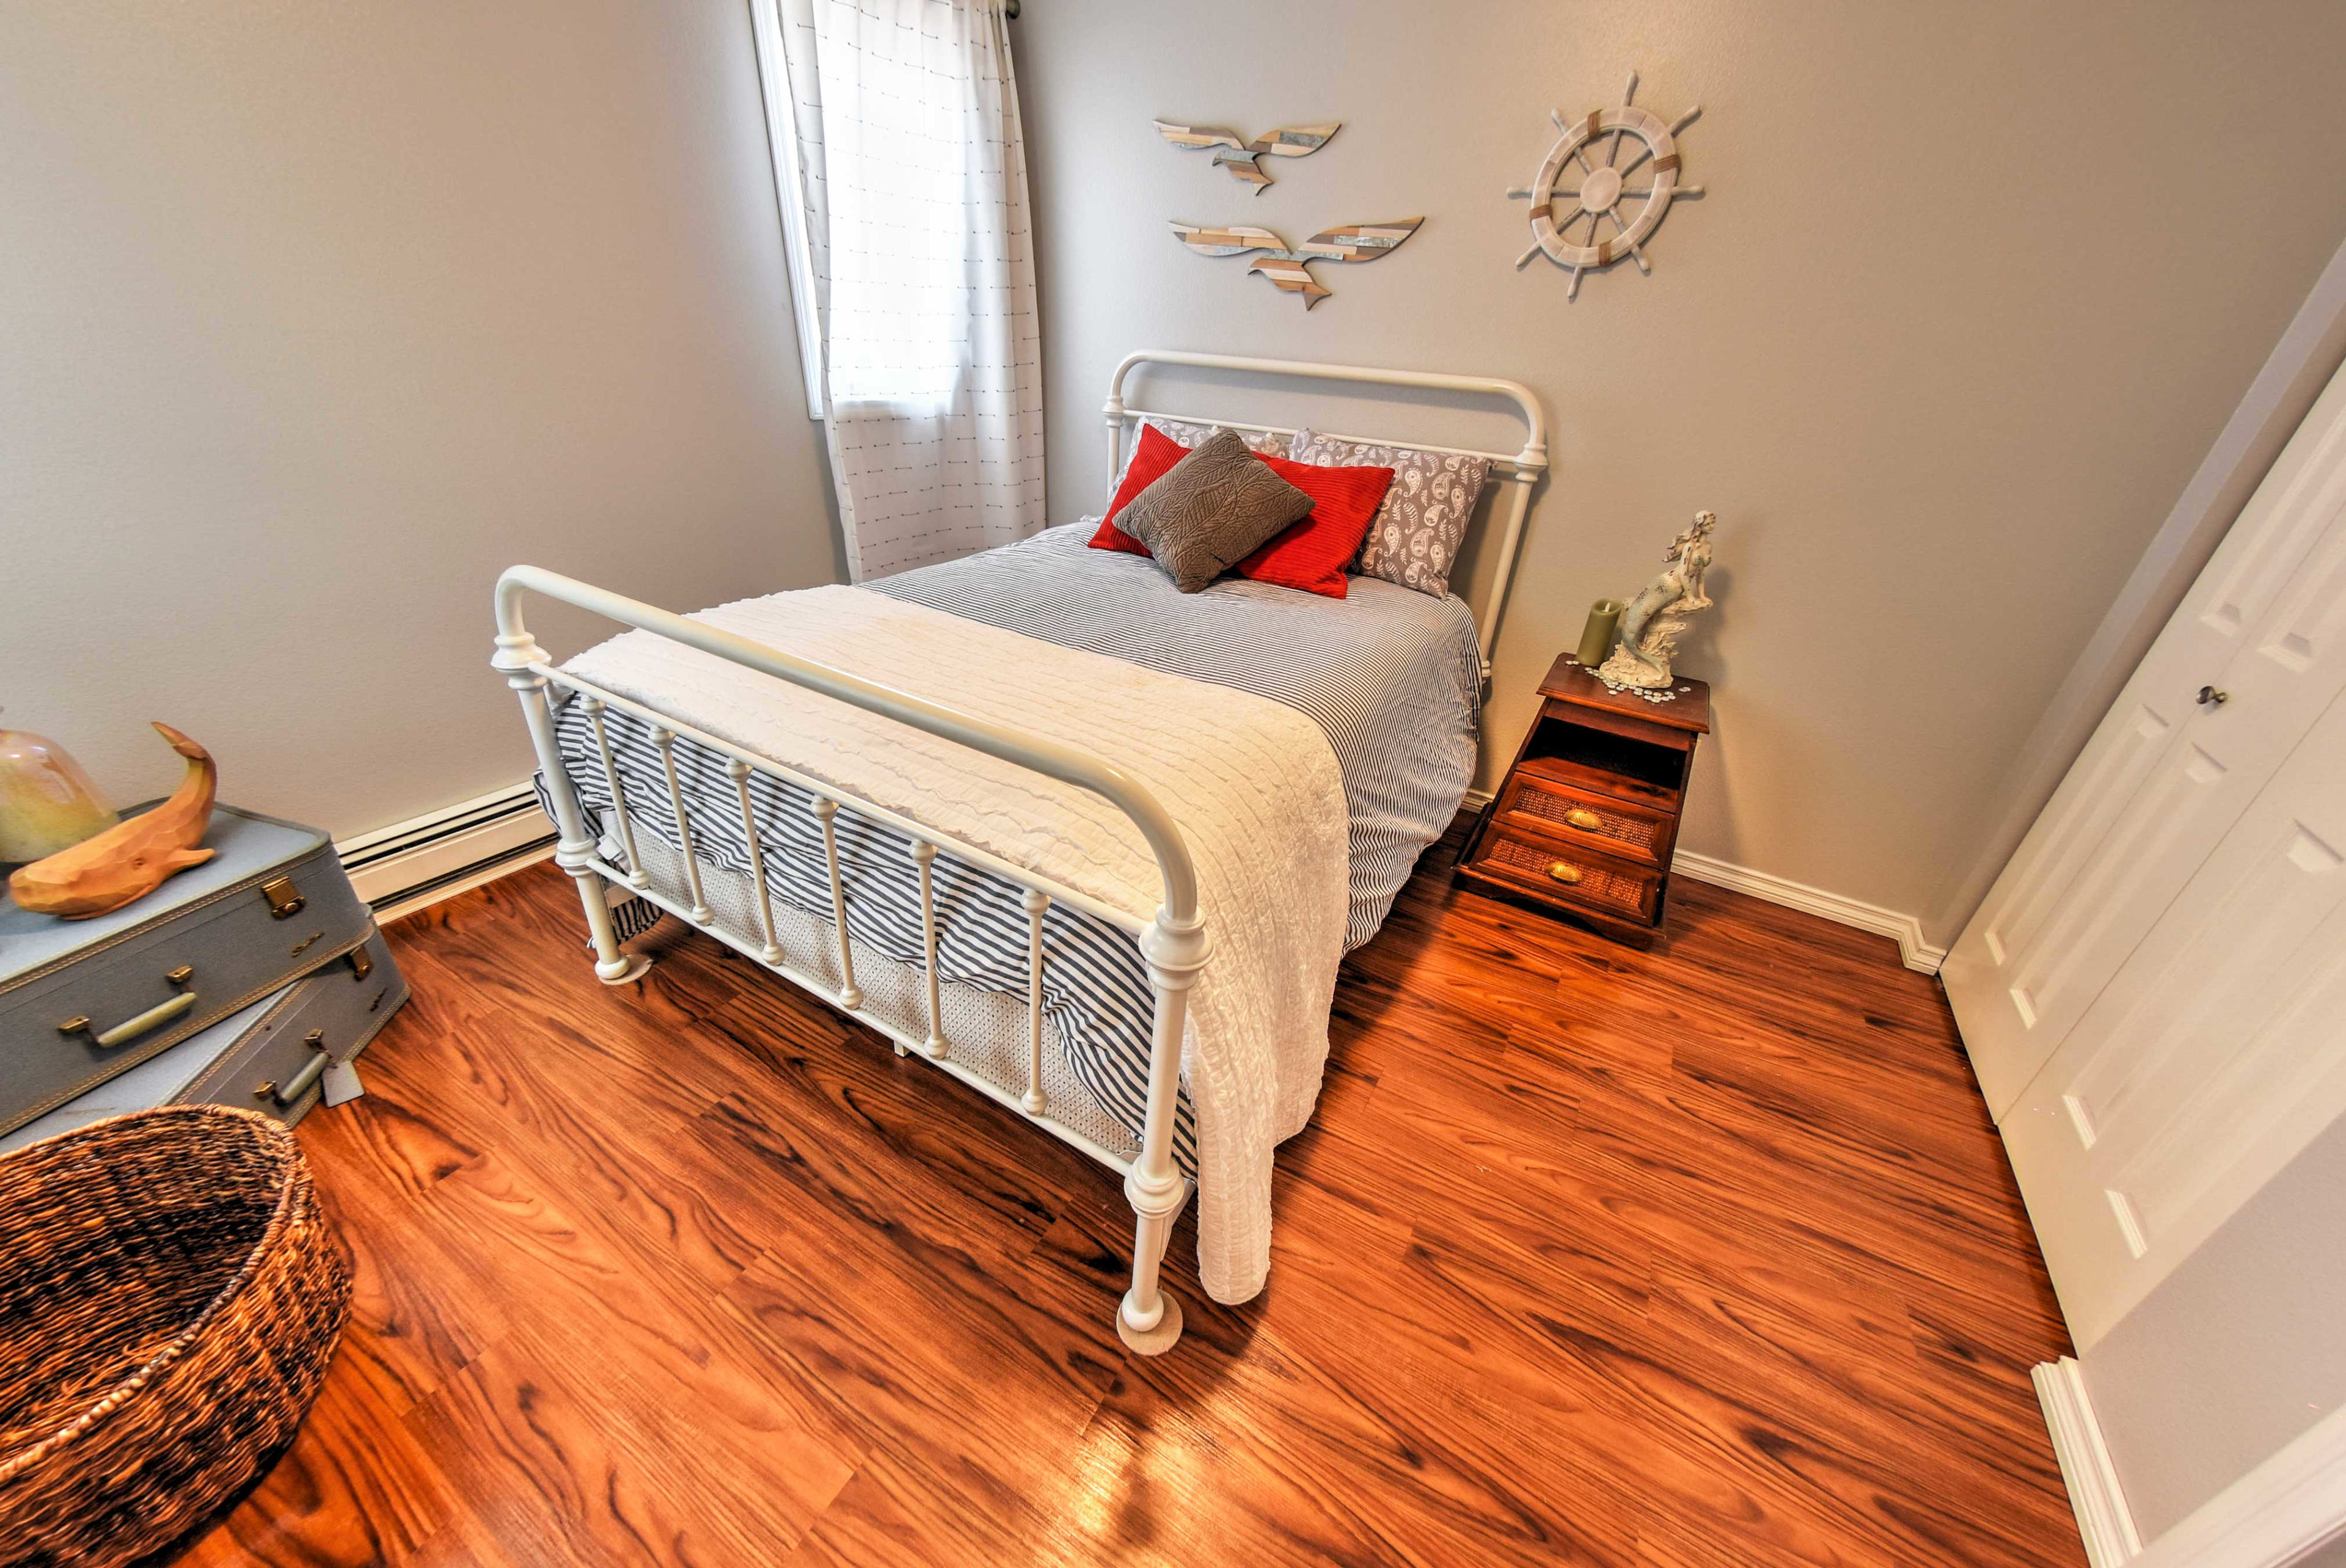 This bedroom features a full-sized bed to sleep 2 guests.